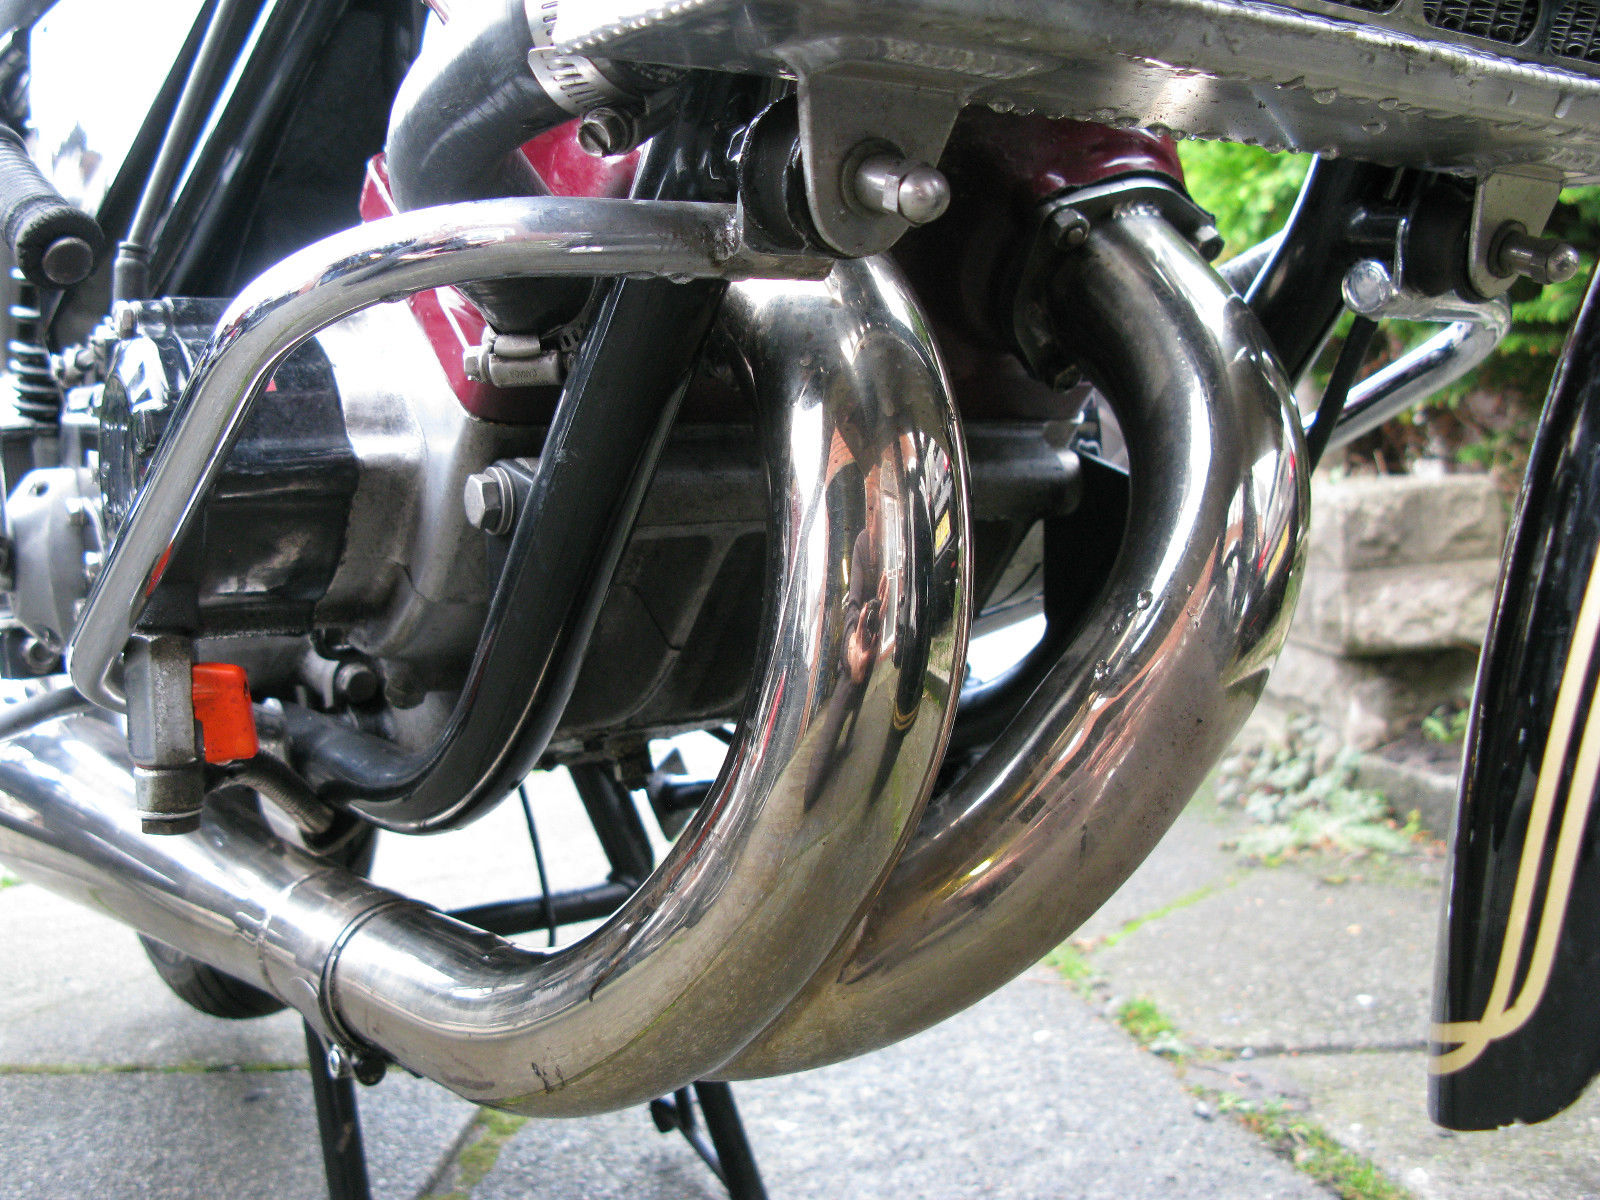 Silk 700S - 1977 - Exhausts, Frame, Radiator and Stand.